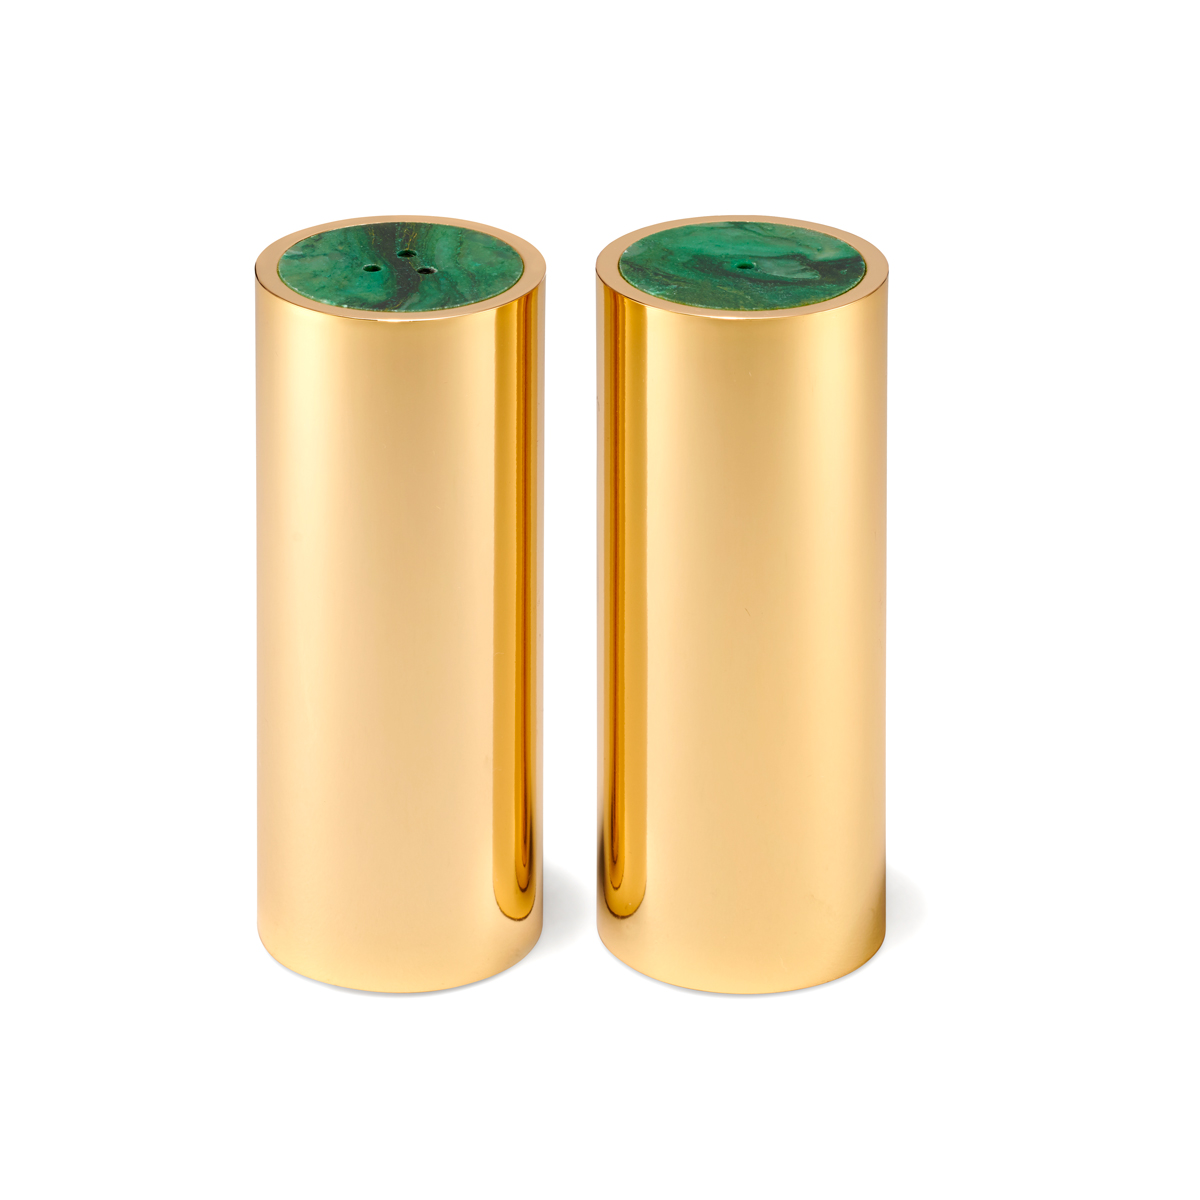 Aerin Lucas Salt and Pepper Shakers, Jade